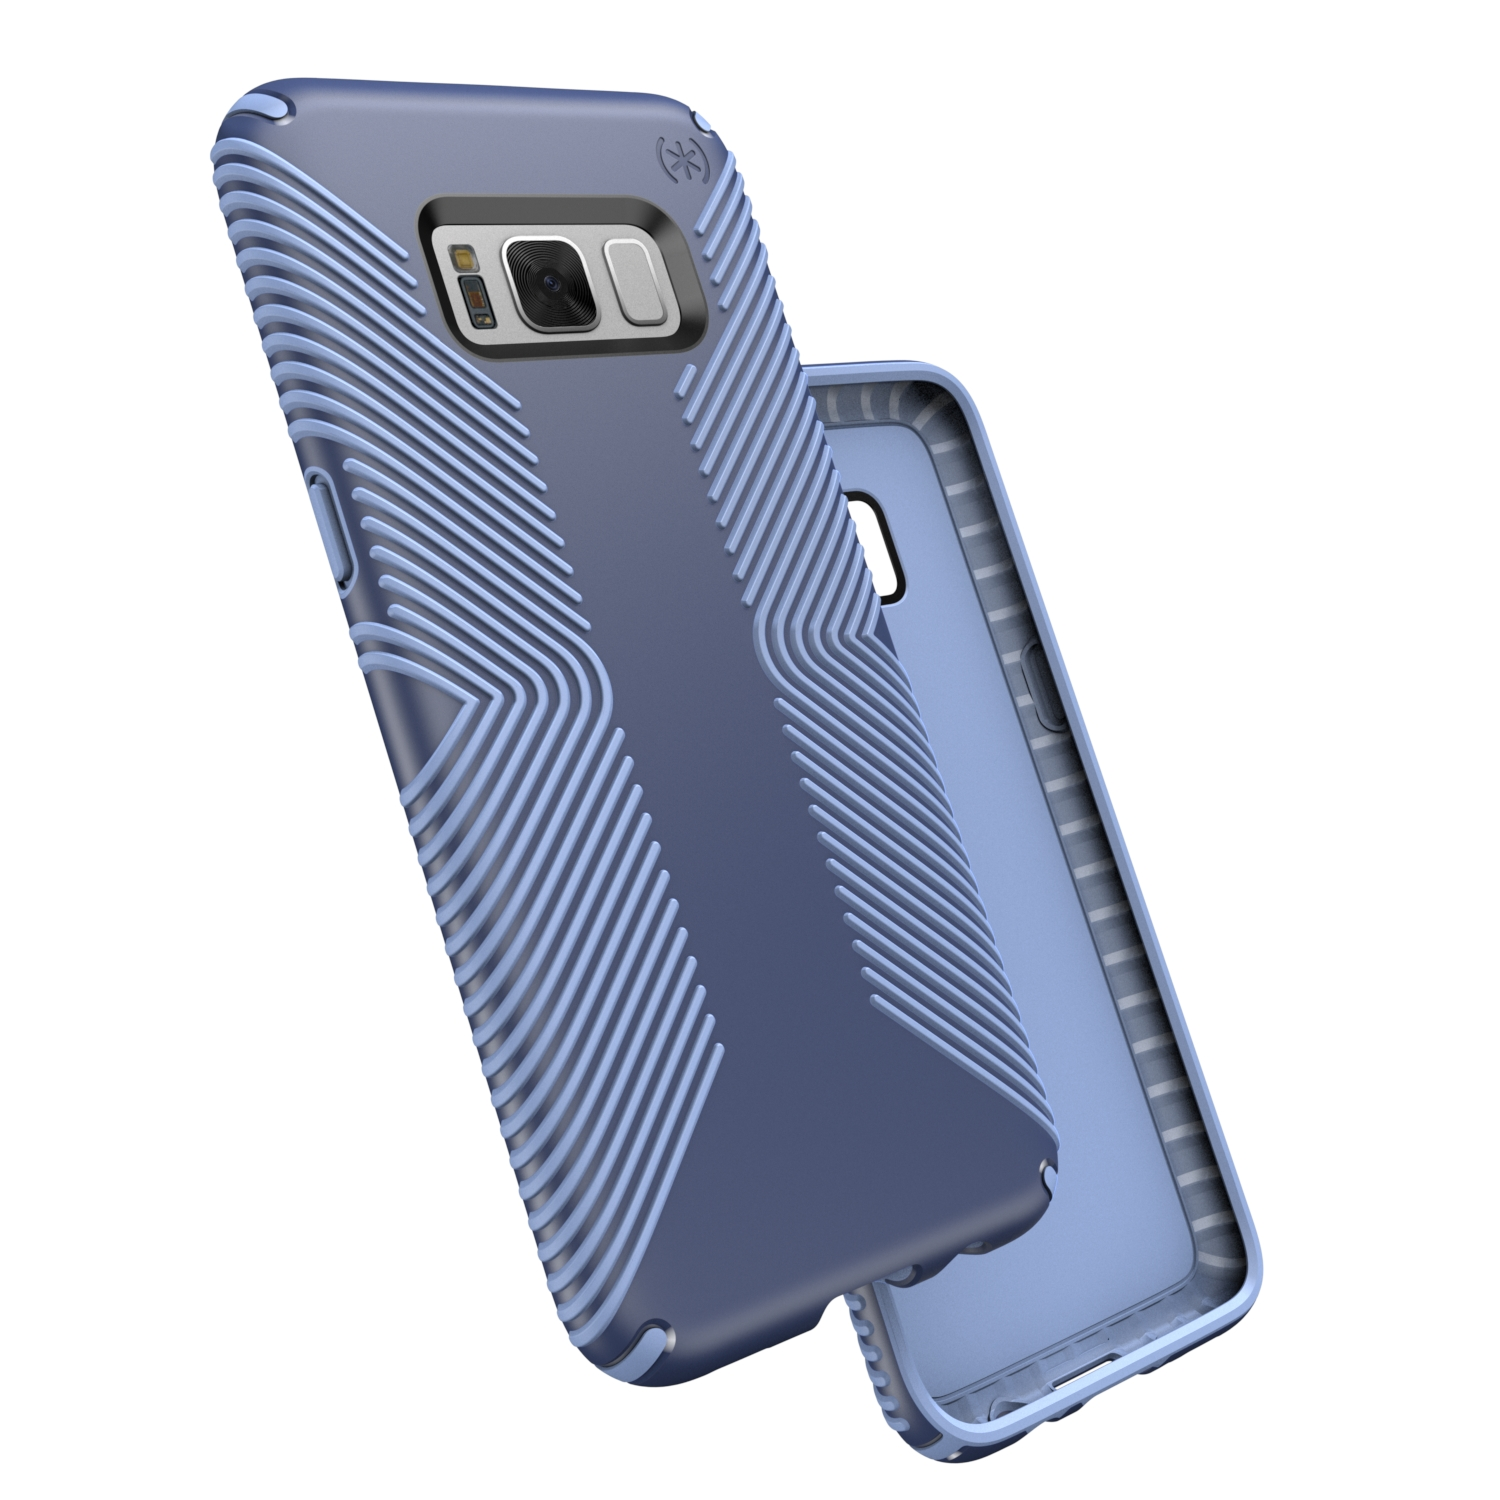 Search and compare best prices of Speck Presidio Grip Samsung Galaxy S8 Plus Cases Marine Blue/Twilight Blue in UK